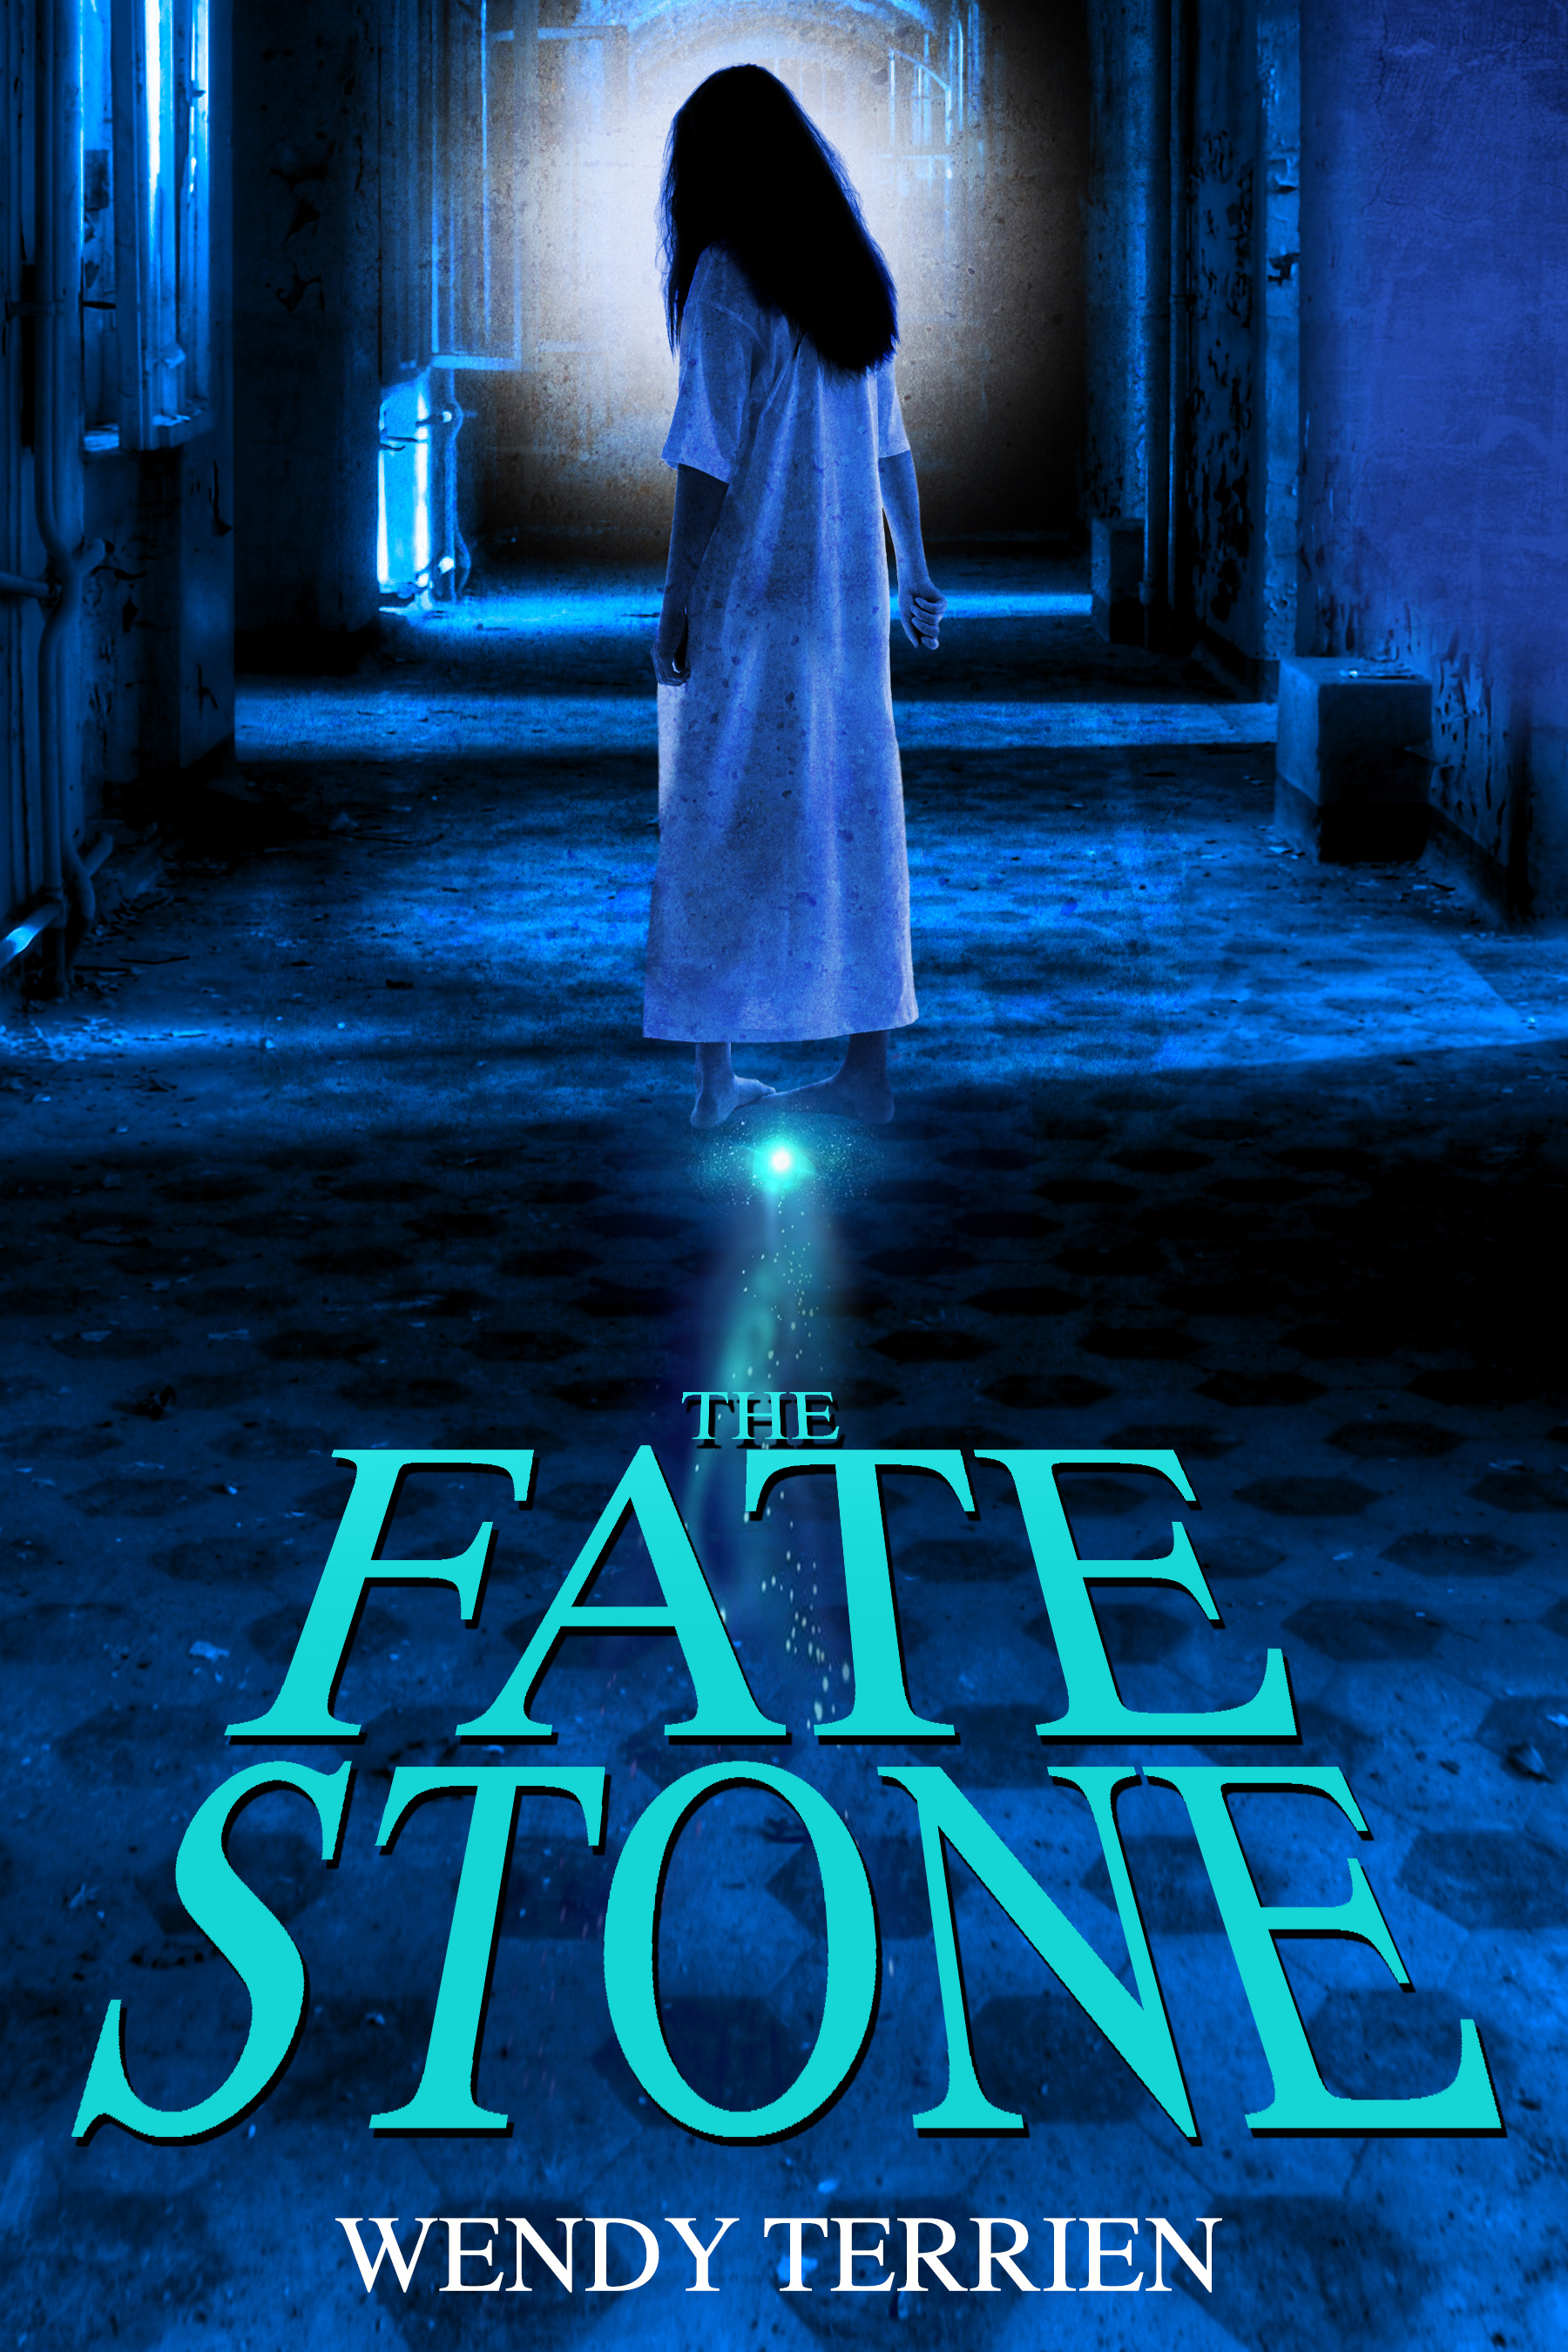 Short Story:The Fate Stone - In this novelette by international best selling author Wendy Terrien, a young woman is lost in time and locked in an asylum where she must fight for survival, fight for love, and defy fate to find her way home.Originally published in the award-winning anthology, TICK TOCK: SEVEN TALES OF TIME.Available at Amazon.